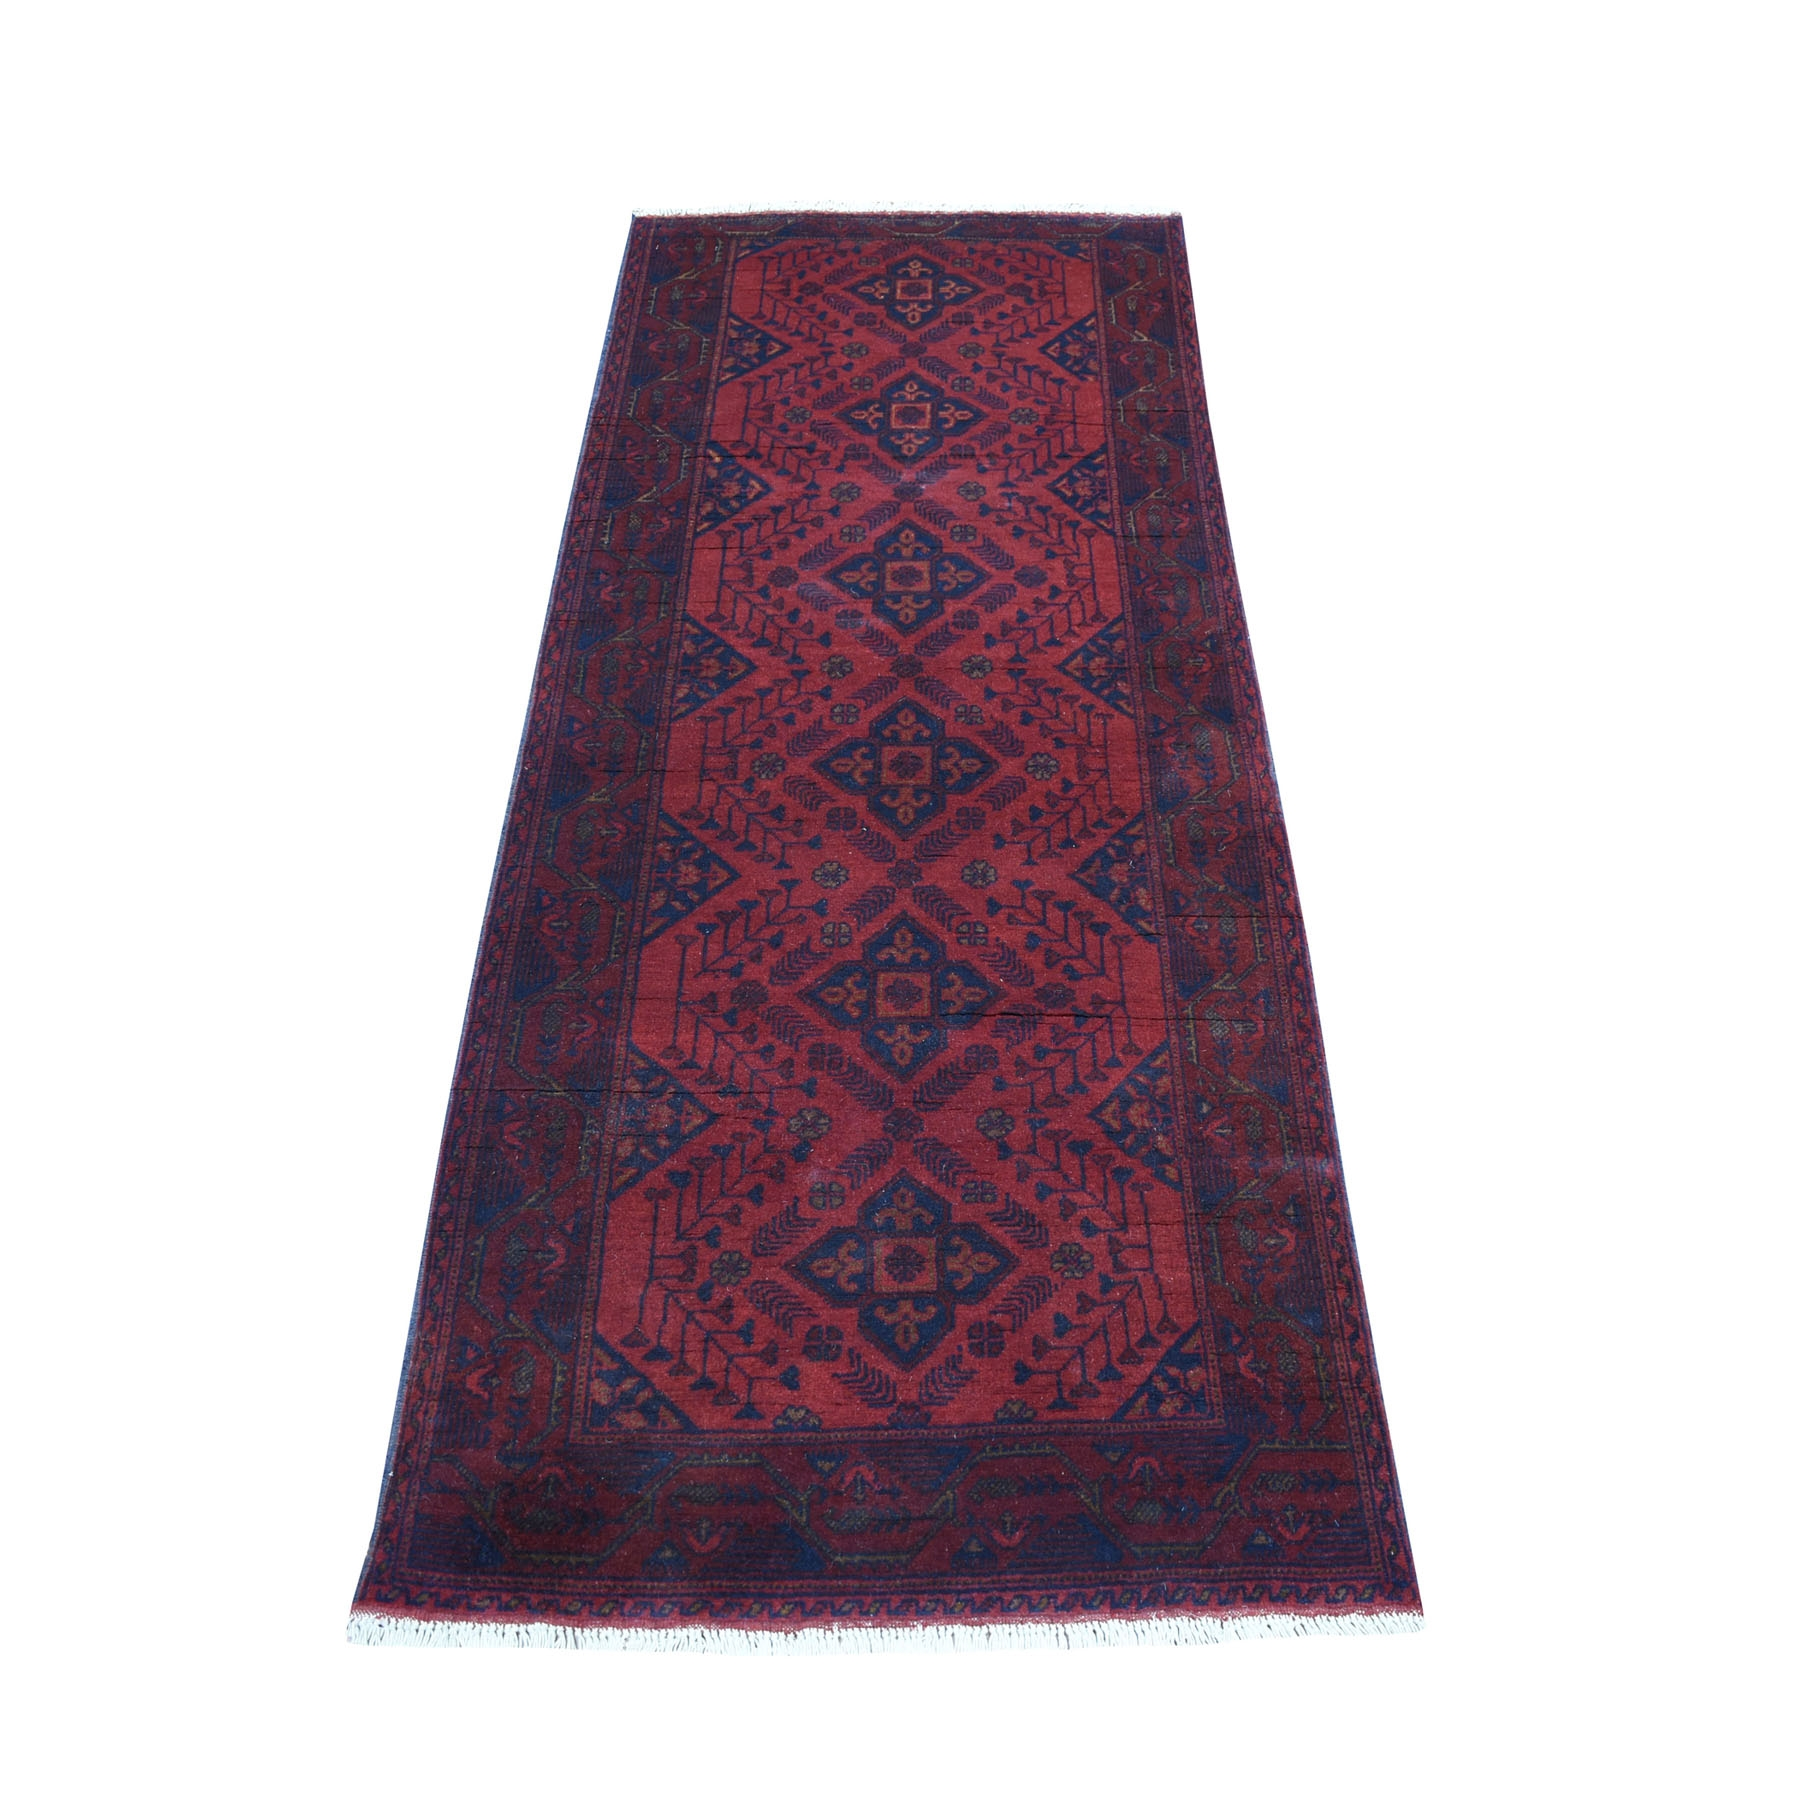 """2'7""""X6'5"""" Deep And Saturated Red Geometric Afghan Andkhoy Runner Pure Wool Hand Knotted Oriental Rug moaec70d"""